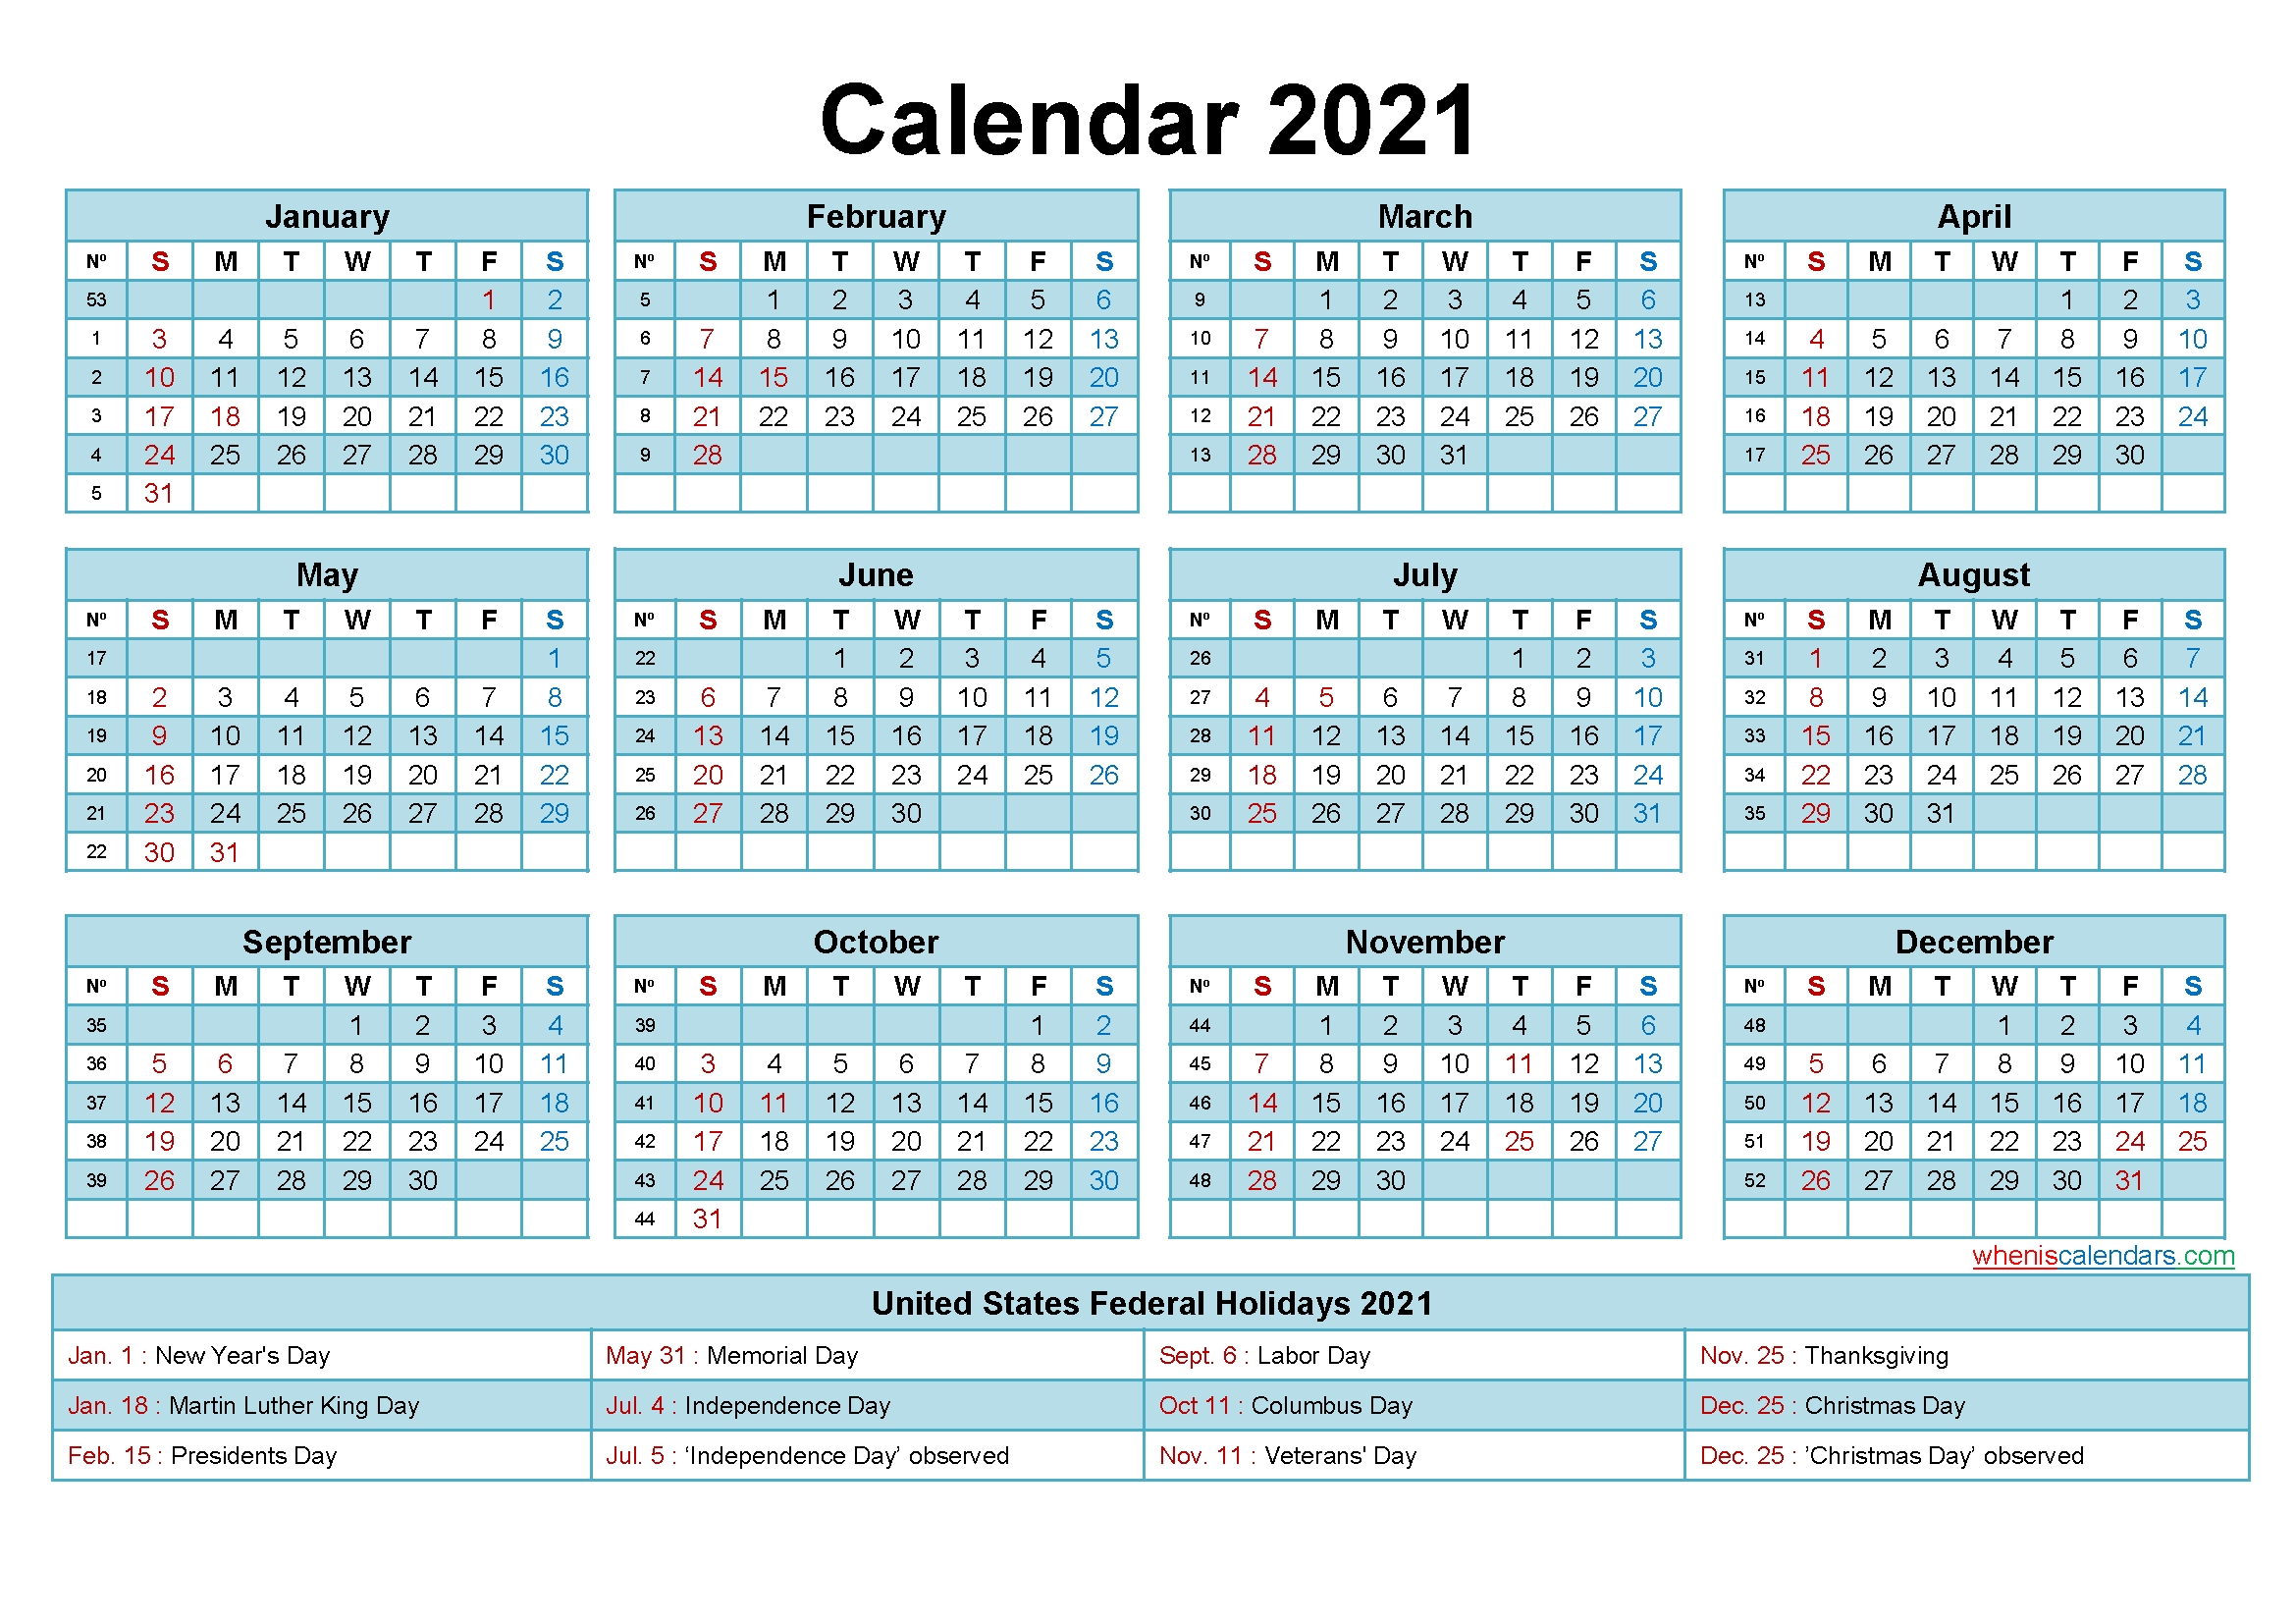 Collect 2021 Financial Calendar With Week Numbers